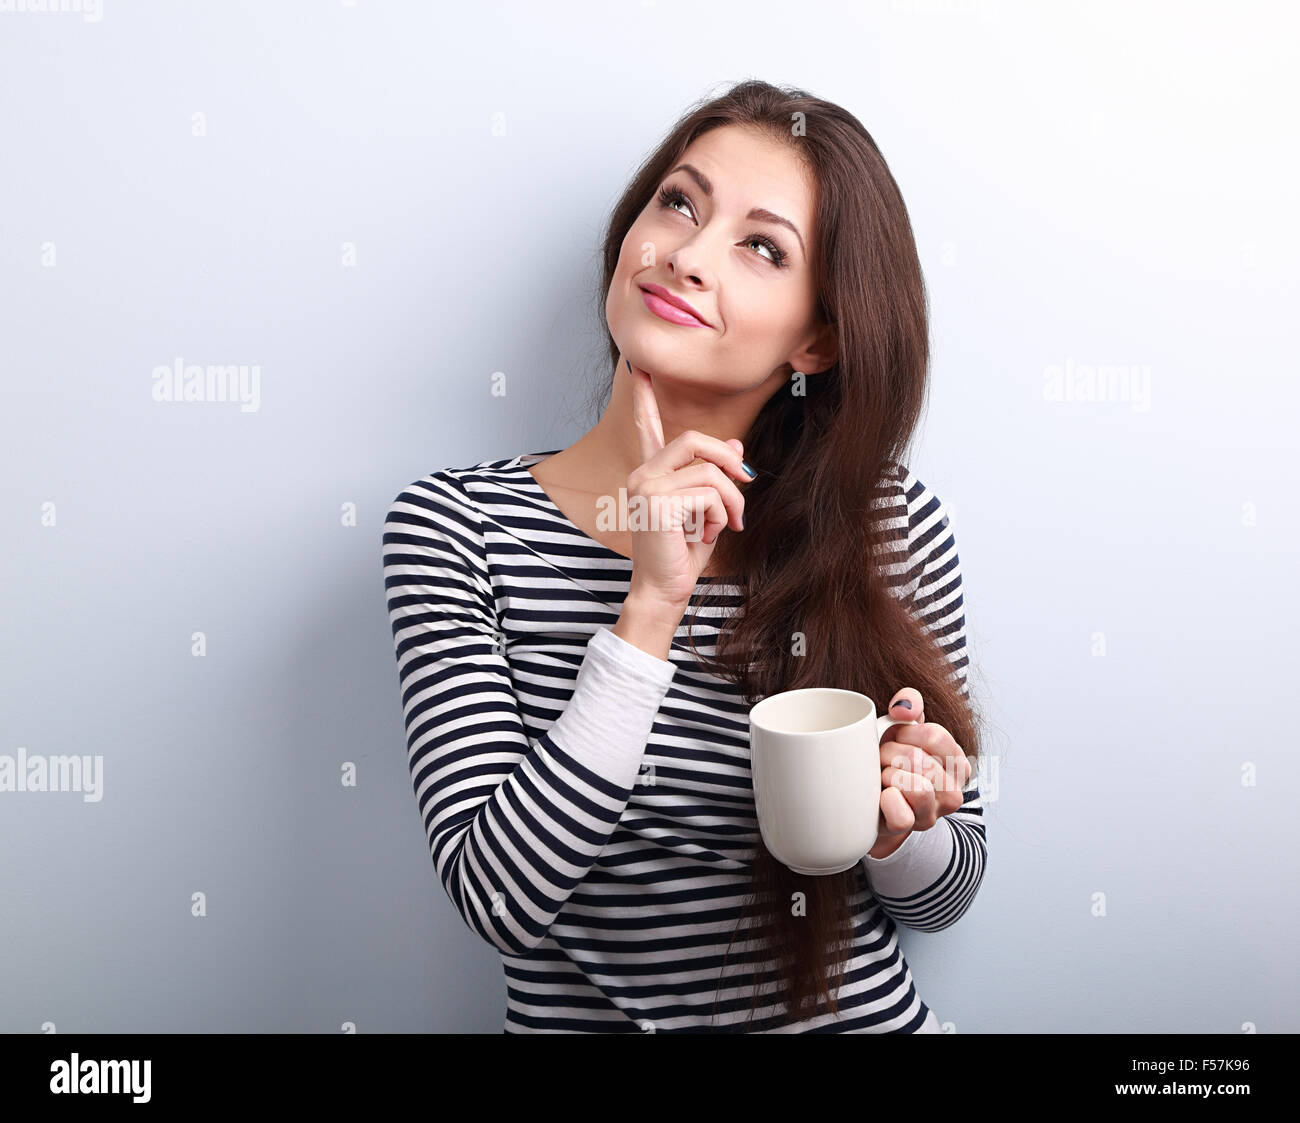 Thinking concerned young woman looking up with cup of coffee on blue background - Stock Image